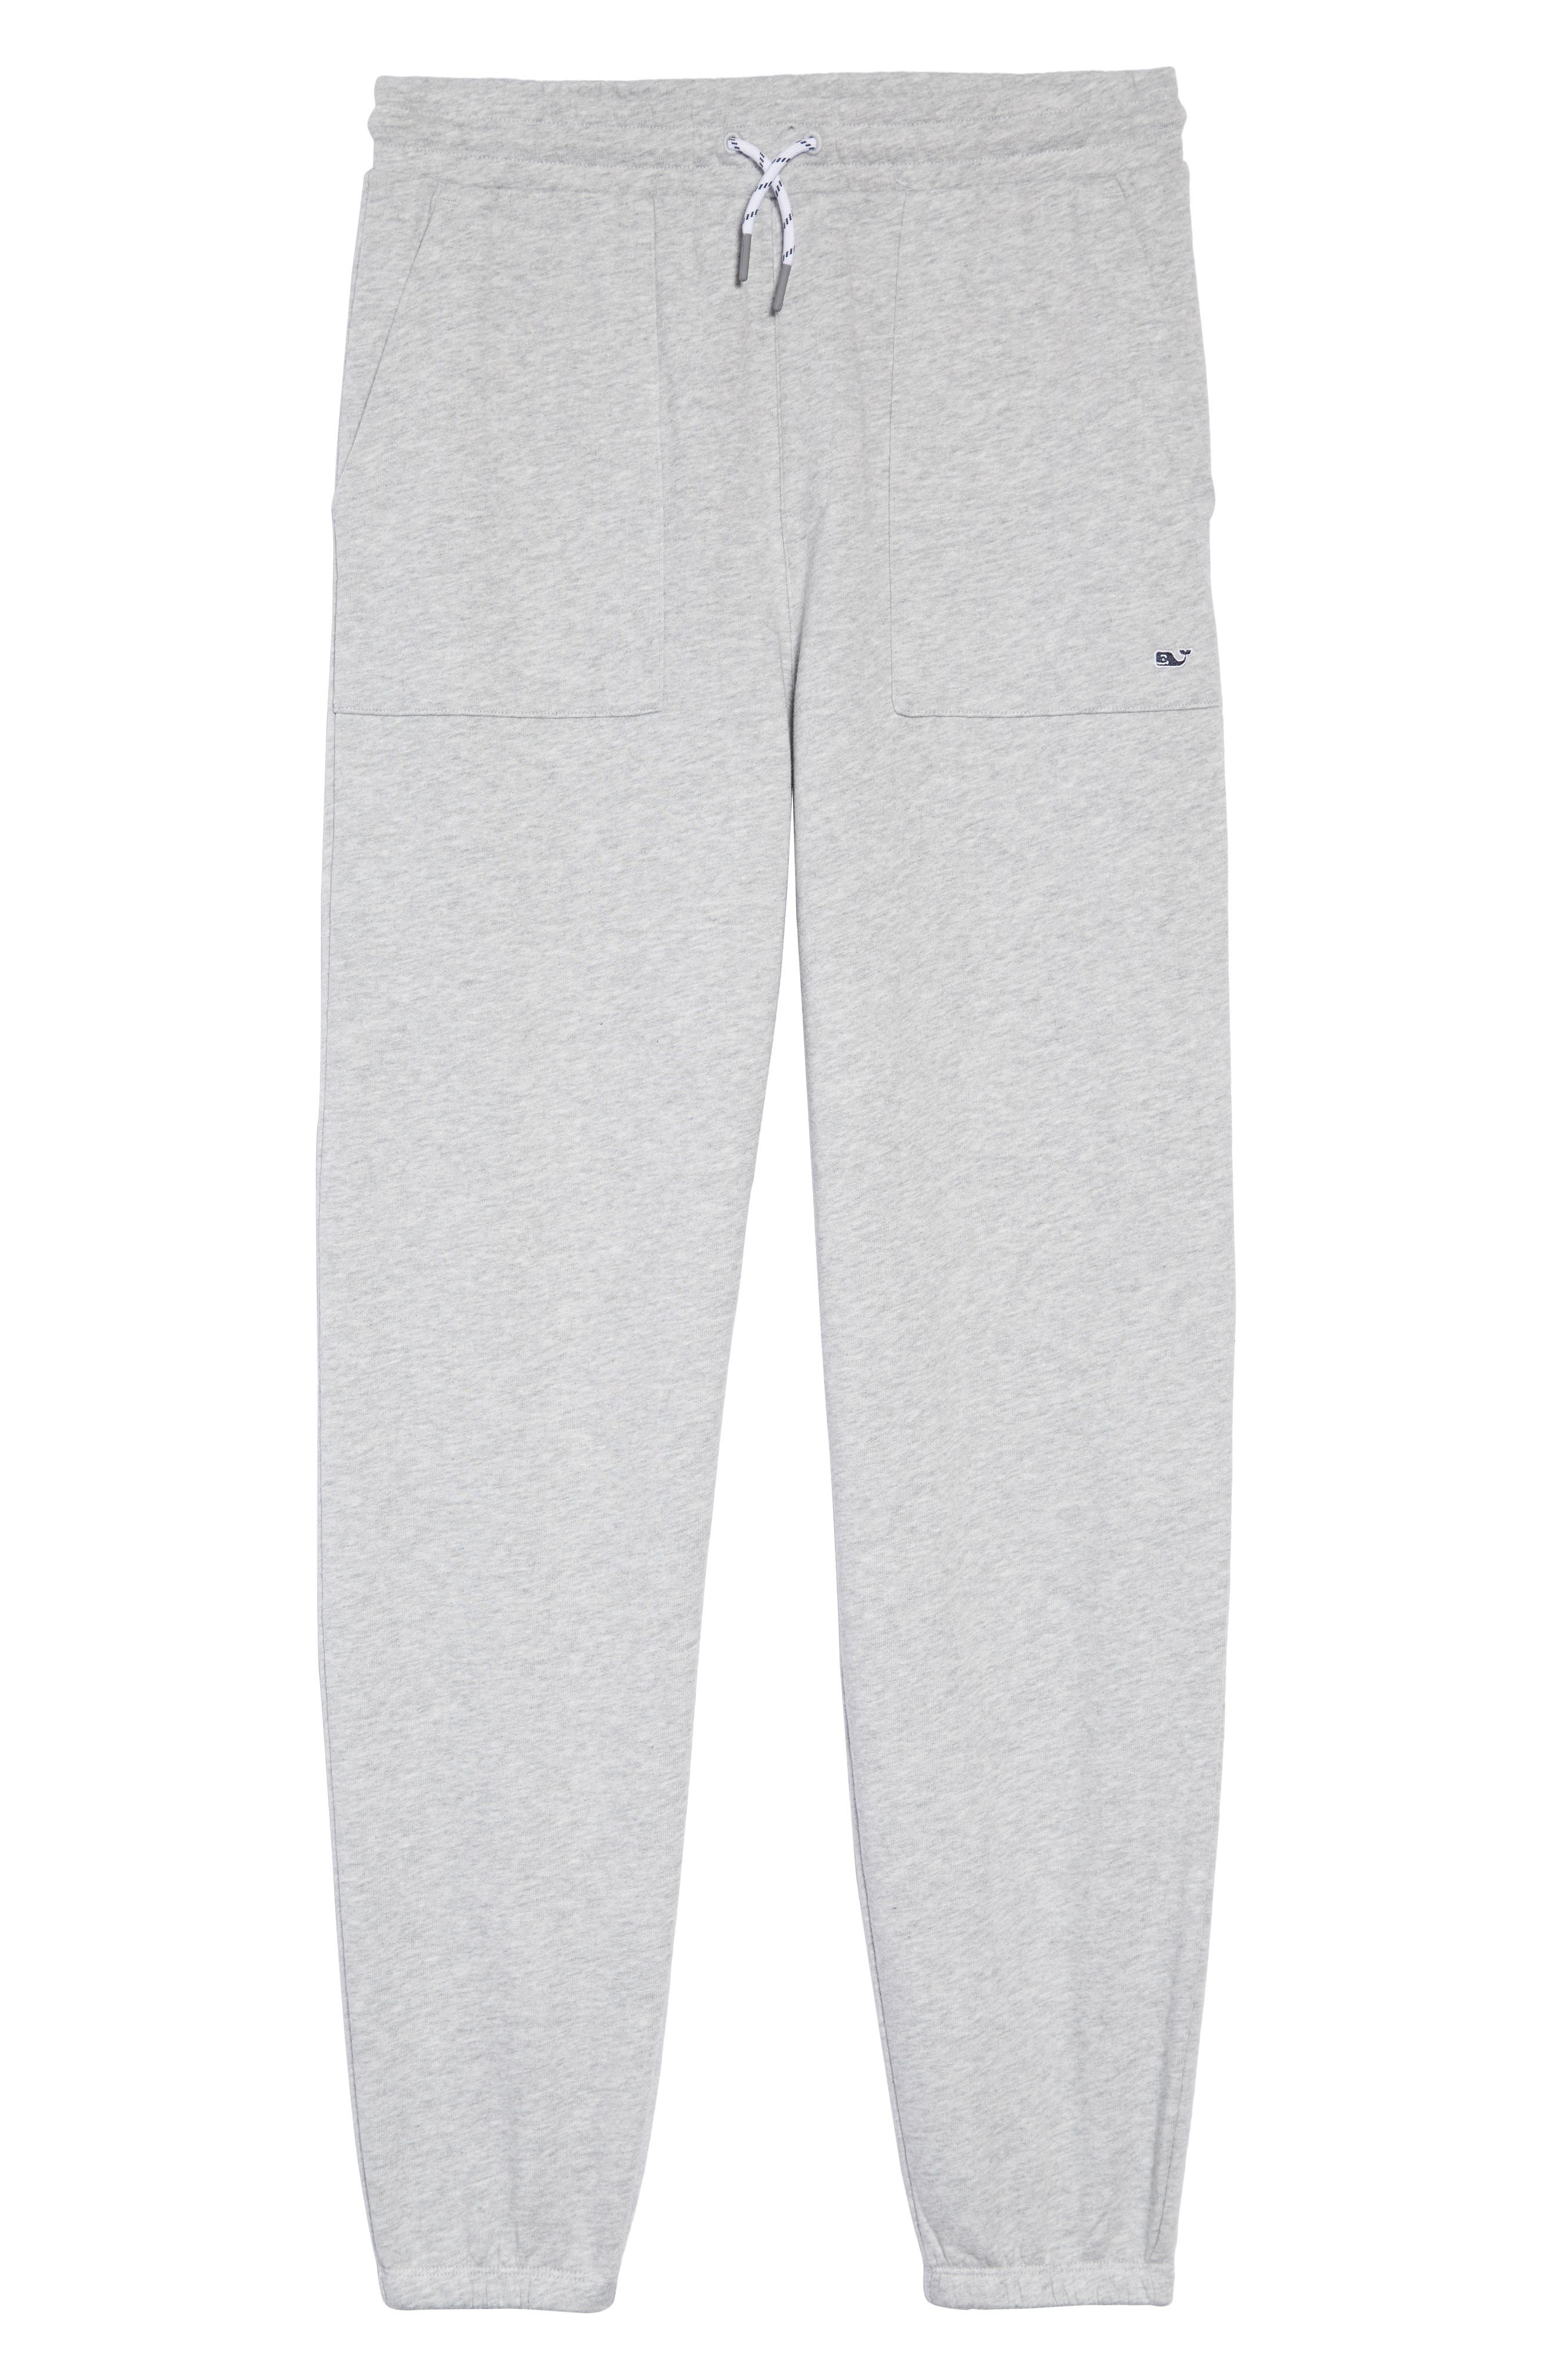 Heritage Terry Jogger Pants,                             Main thumbnail 1, color,                             GRAY HEATHER